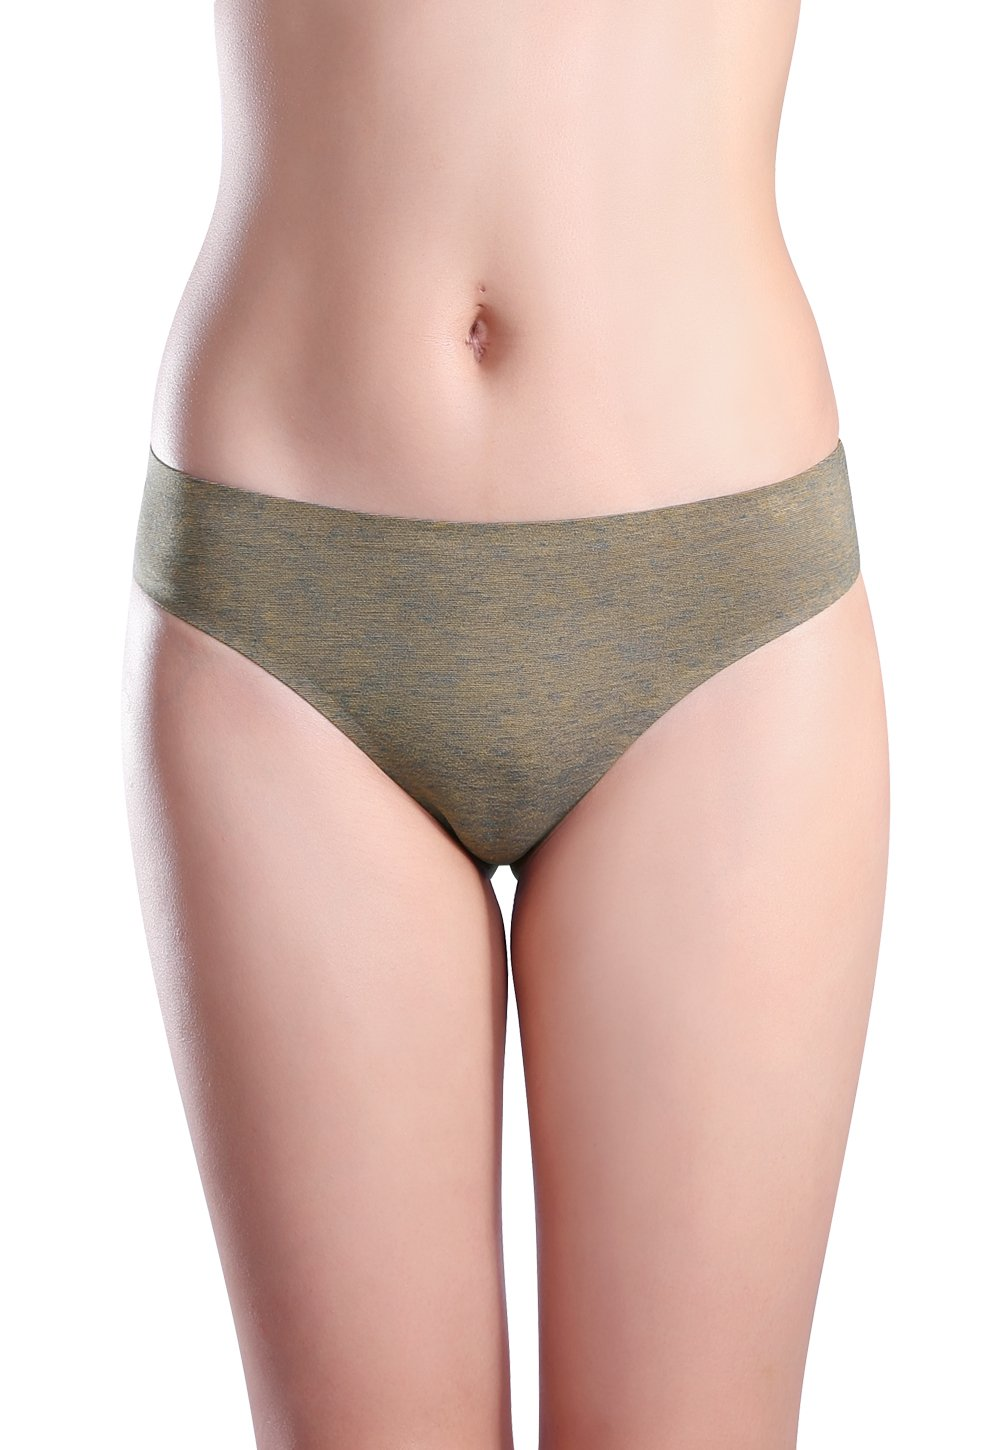 Wealurre Women's Cotton Thong Breathable Panties Low Rise Underwear (Medium, Blue Gold) by Wealurre (Image #4)